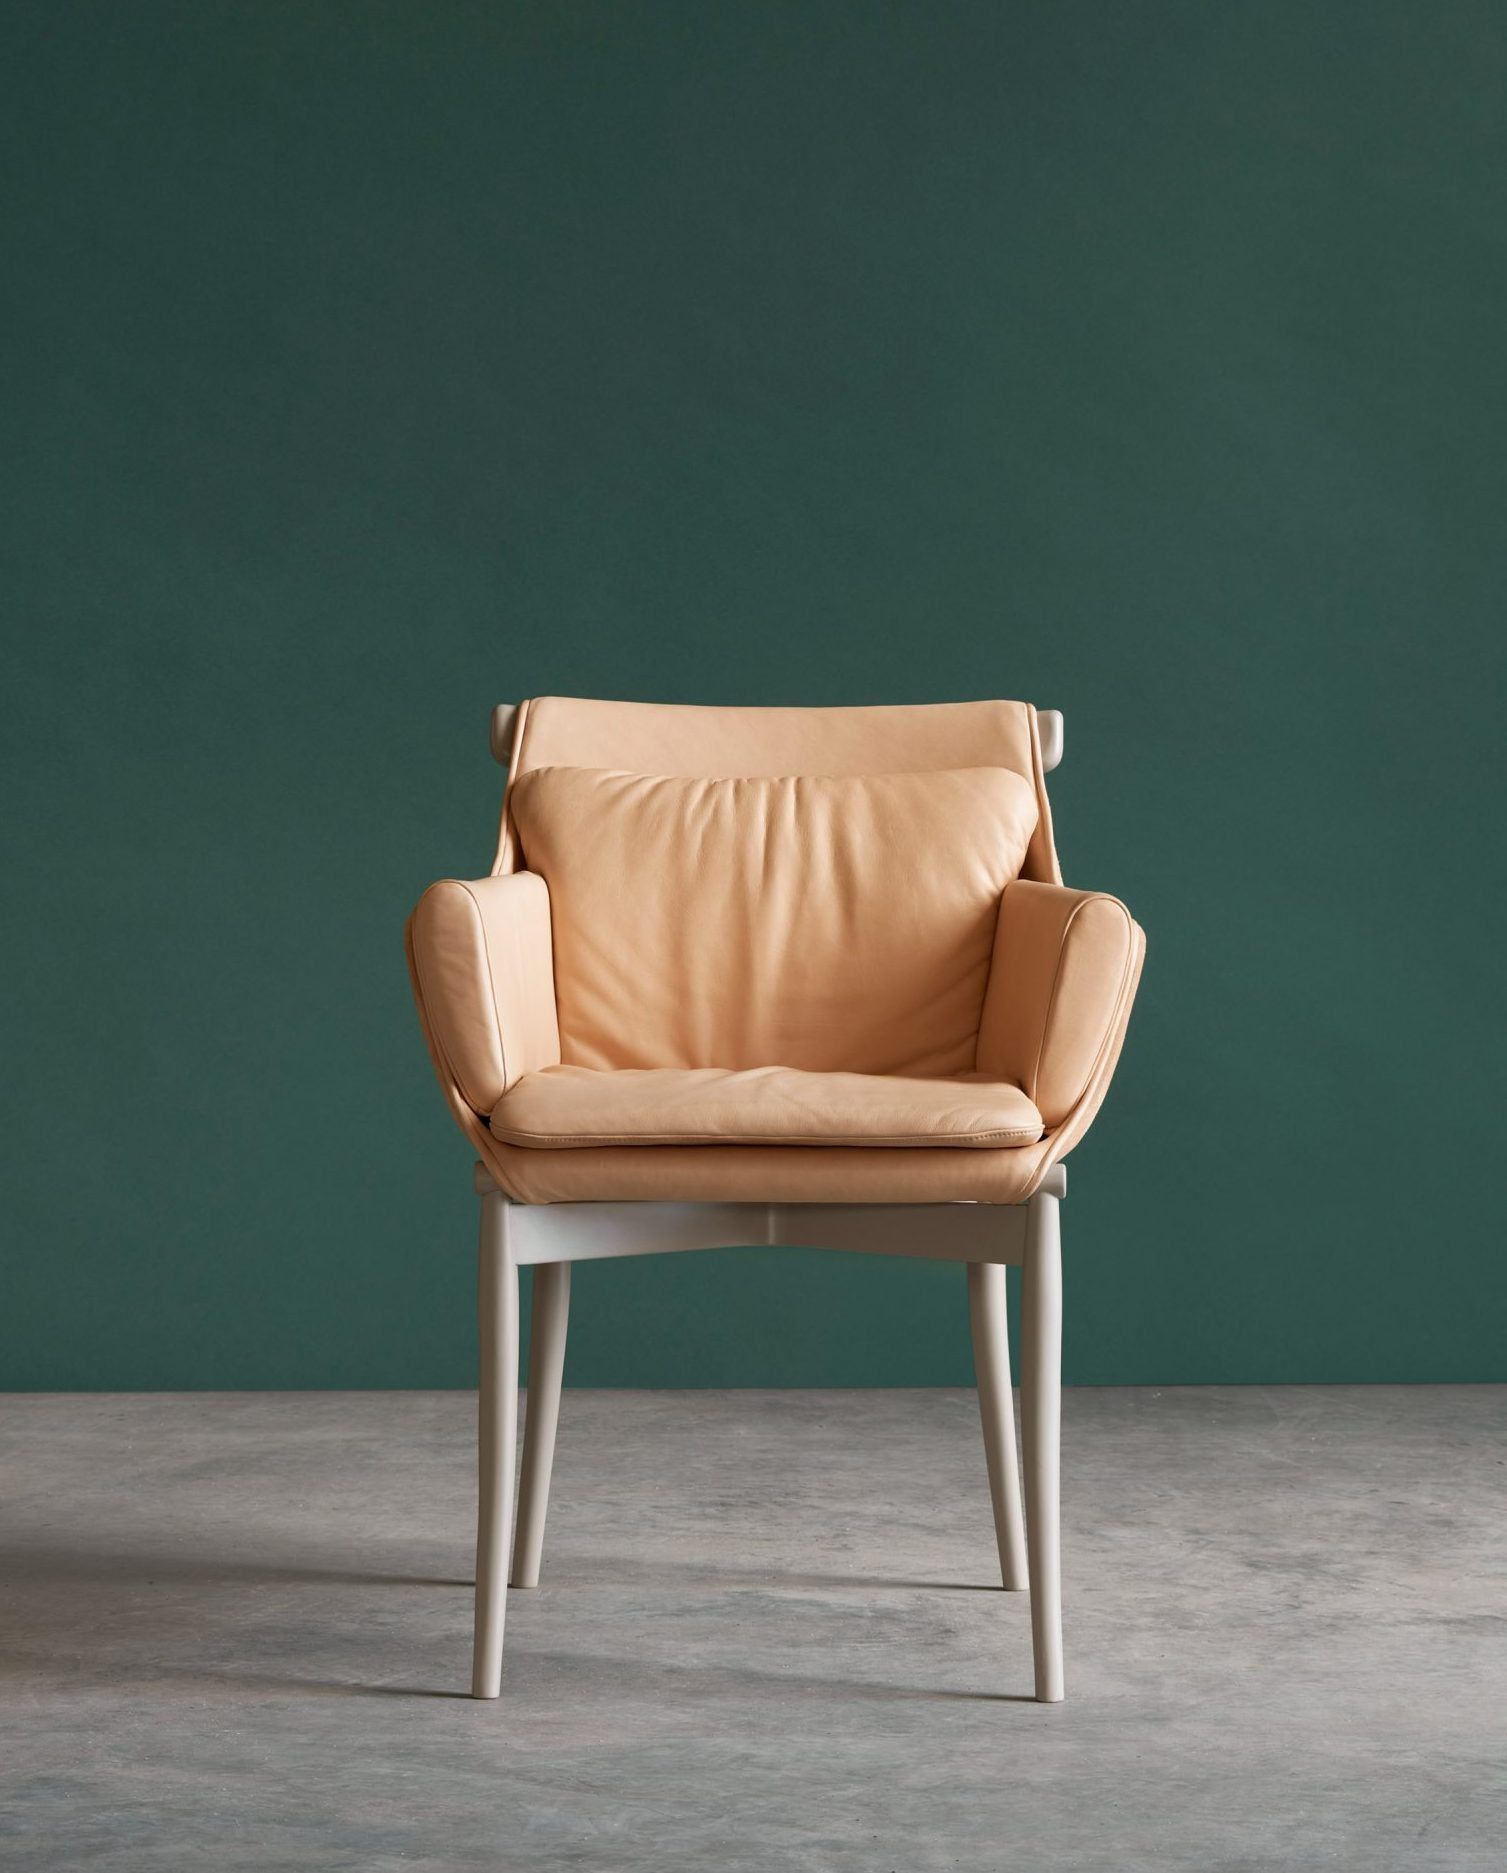 A photograph of a chair